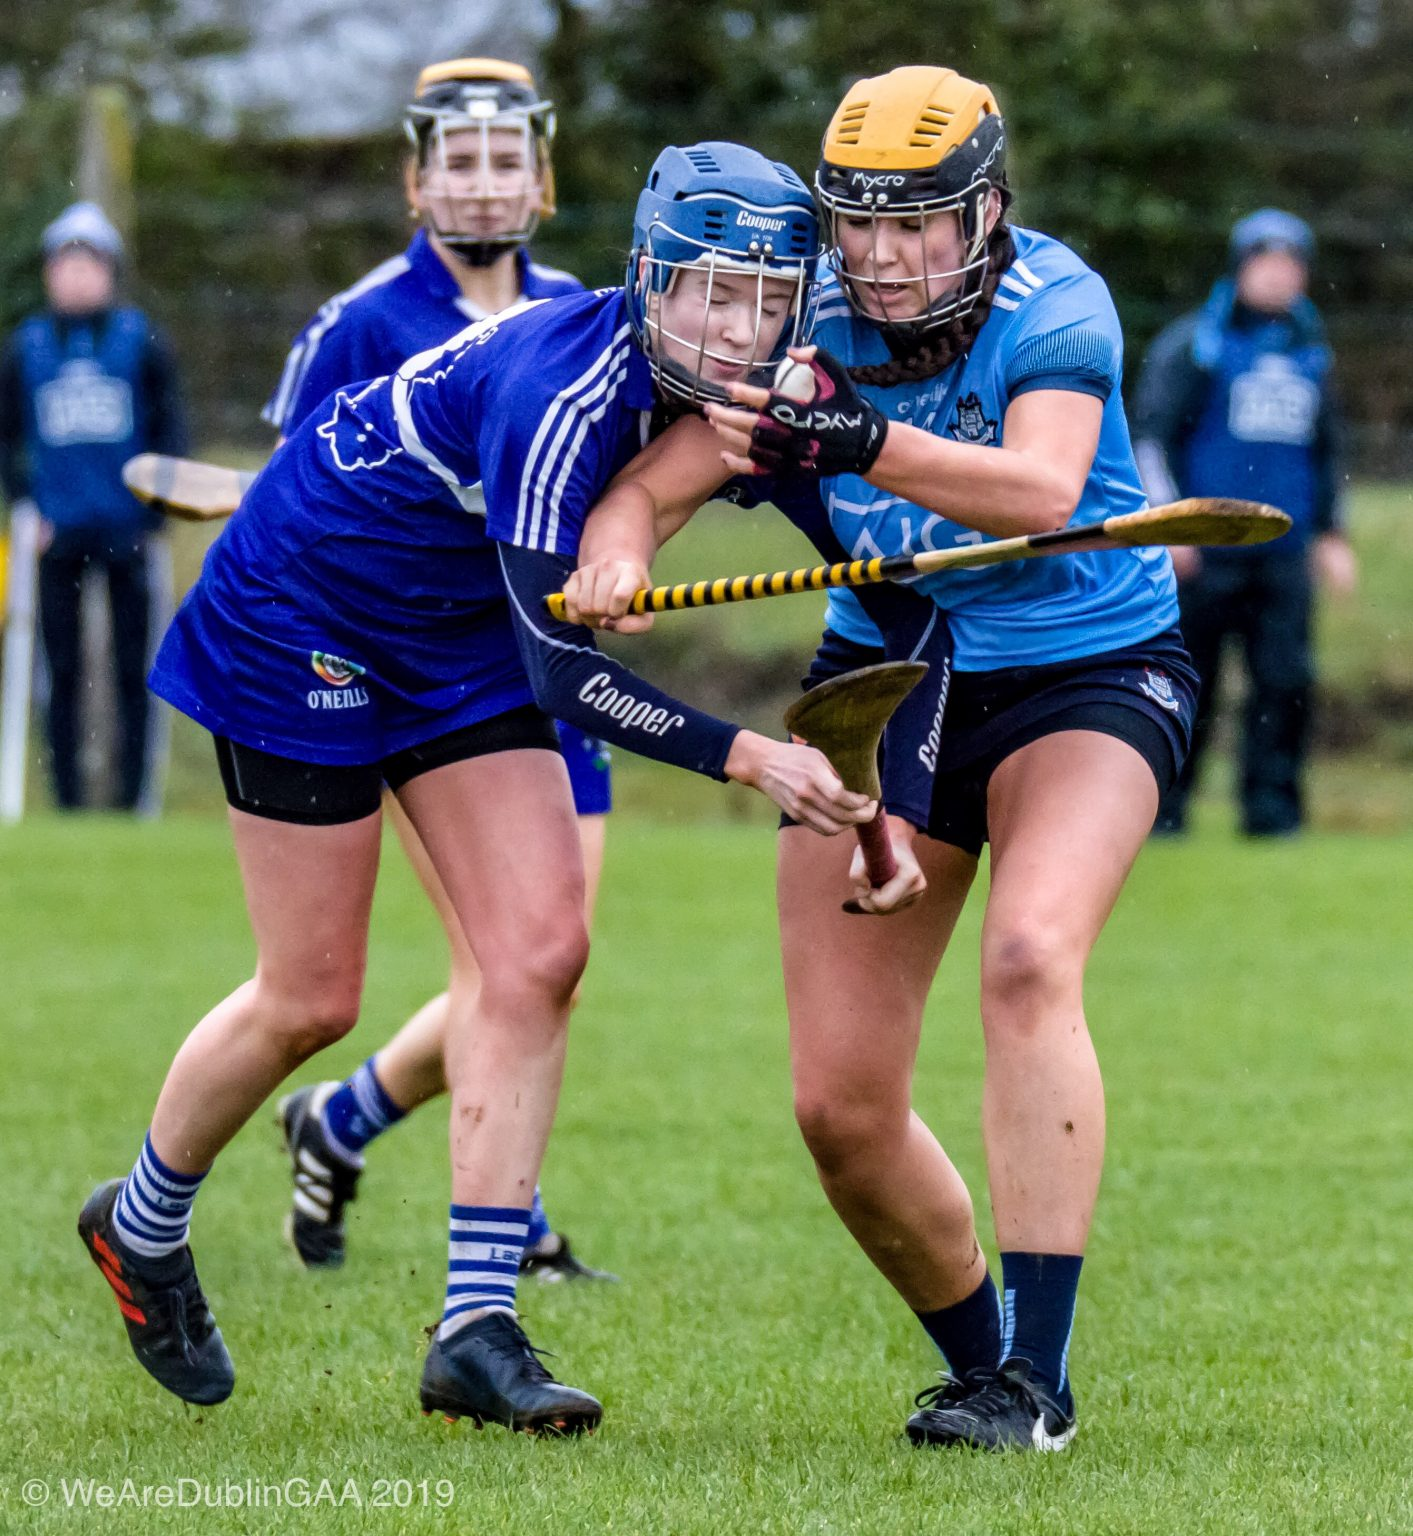 Dublin Camogie player on the right in a sky blue jersey, navy skort and yellow and black helmet is tackled by a Laois player in a dark blue jersey, dark blue skort and dark blue helmet during the Division 2 league game